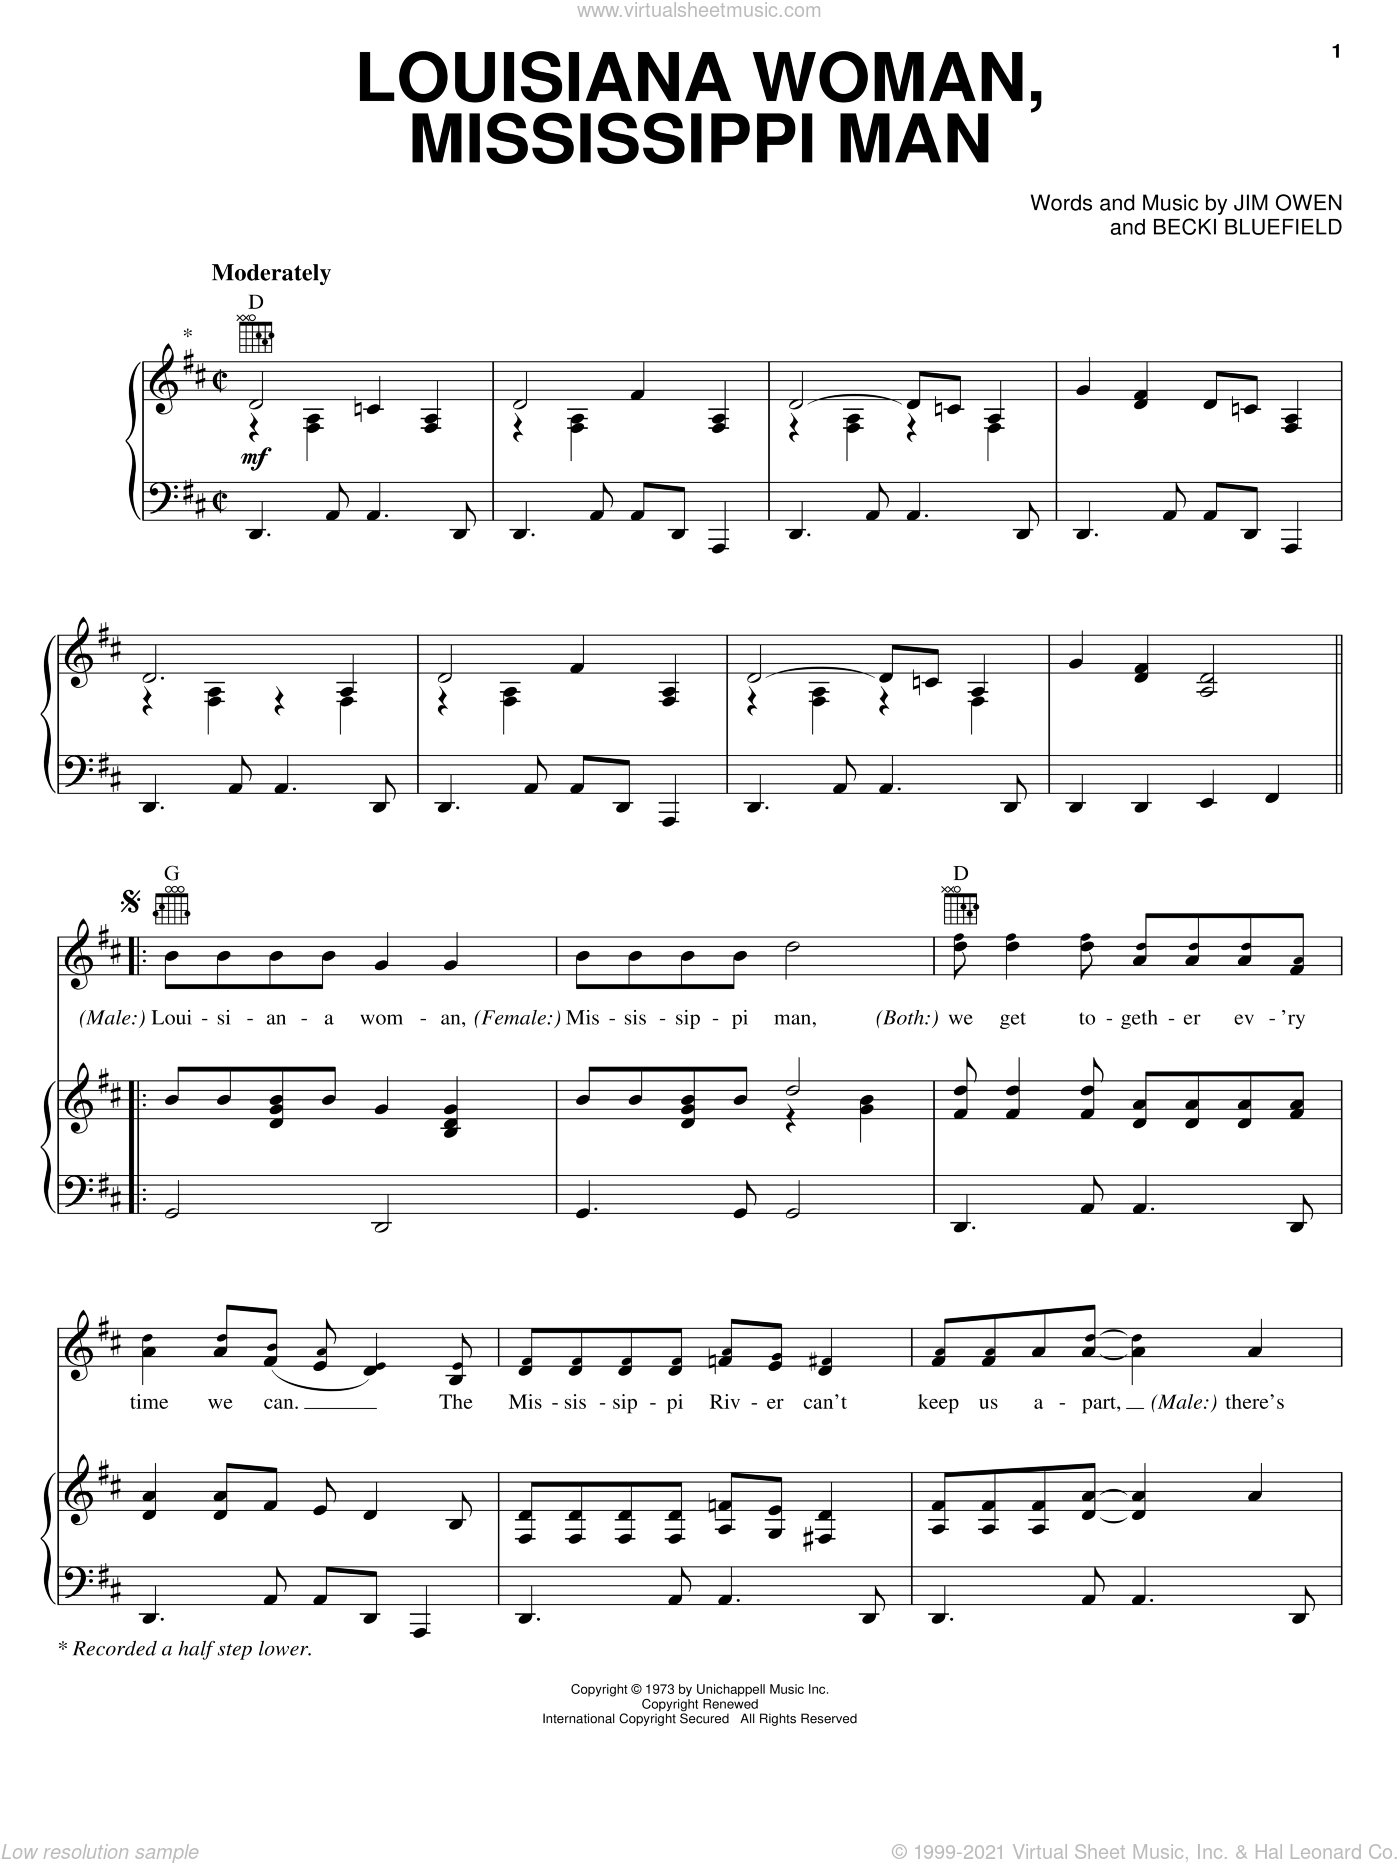 Louisiana Woman, Mississippi Man sheet music for voice, piano or guitar by Loretta Lynn, Conway Twitty, Becki Bluefield and Jim Owen, intermediate skill level